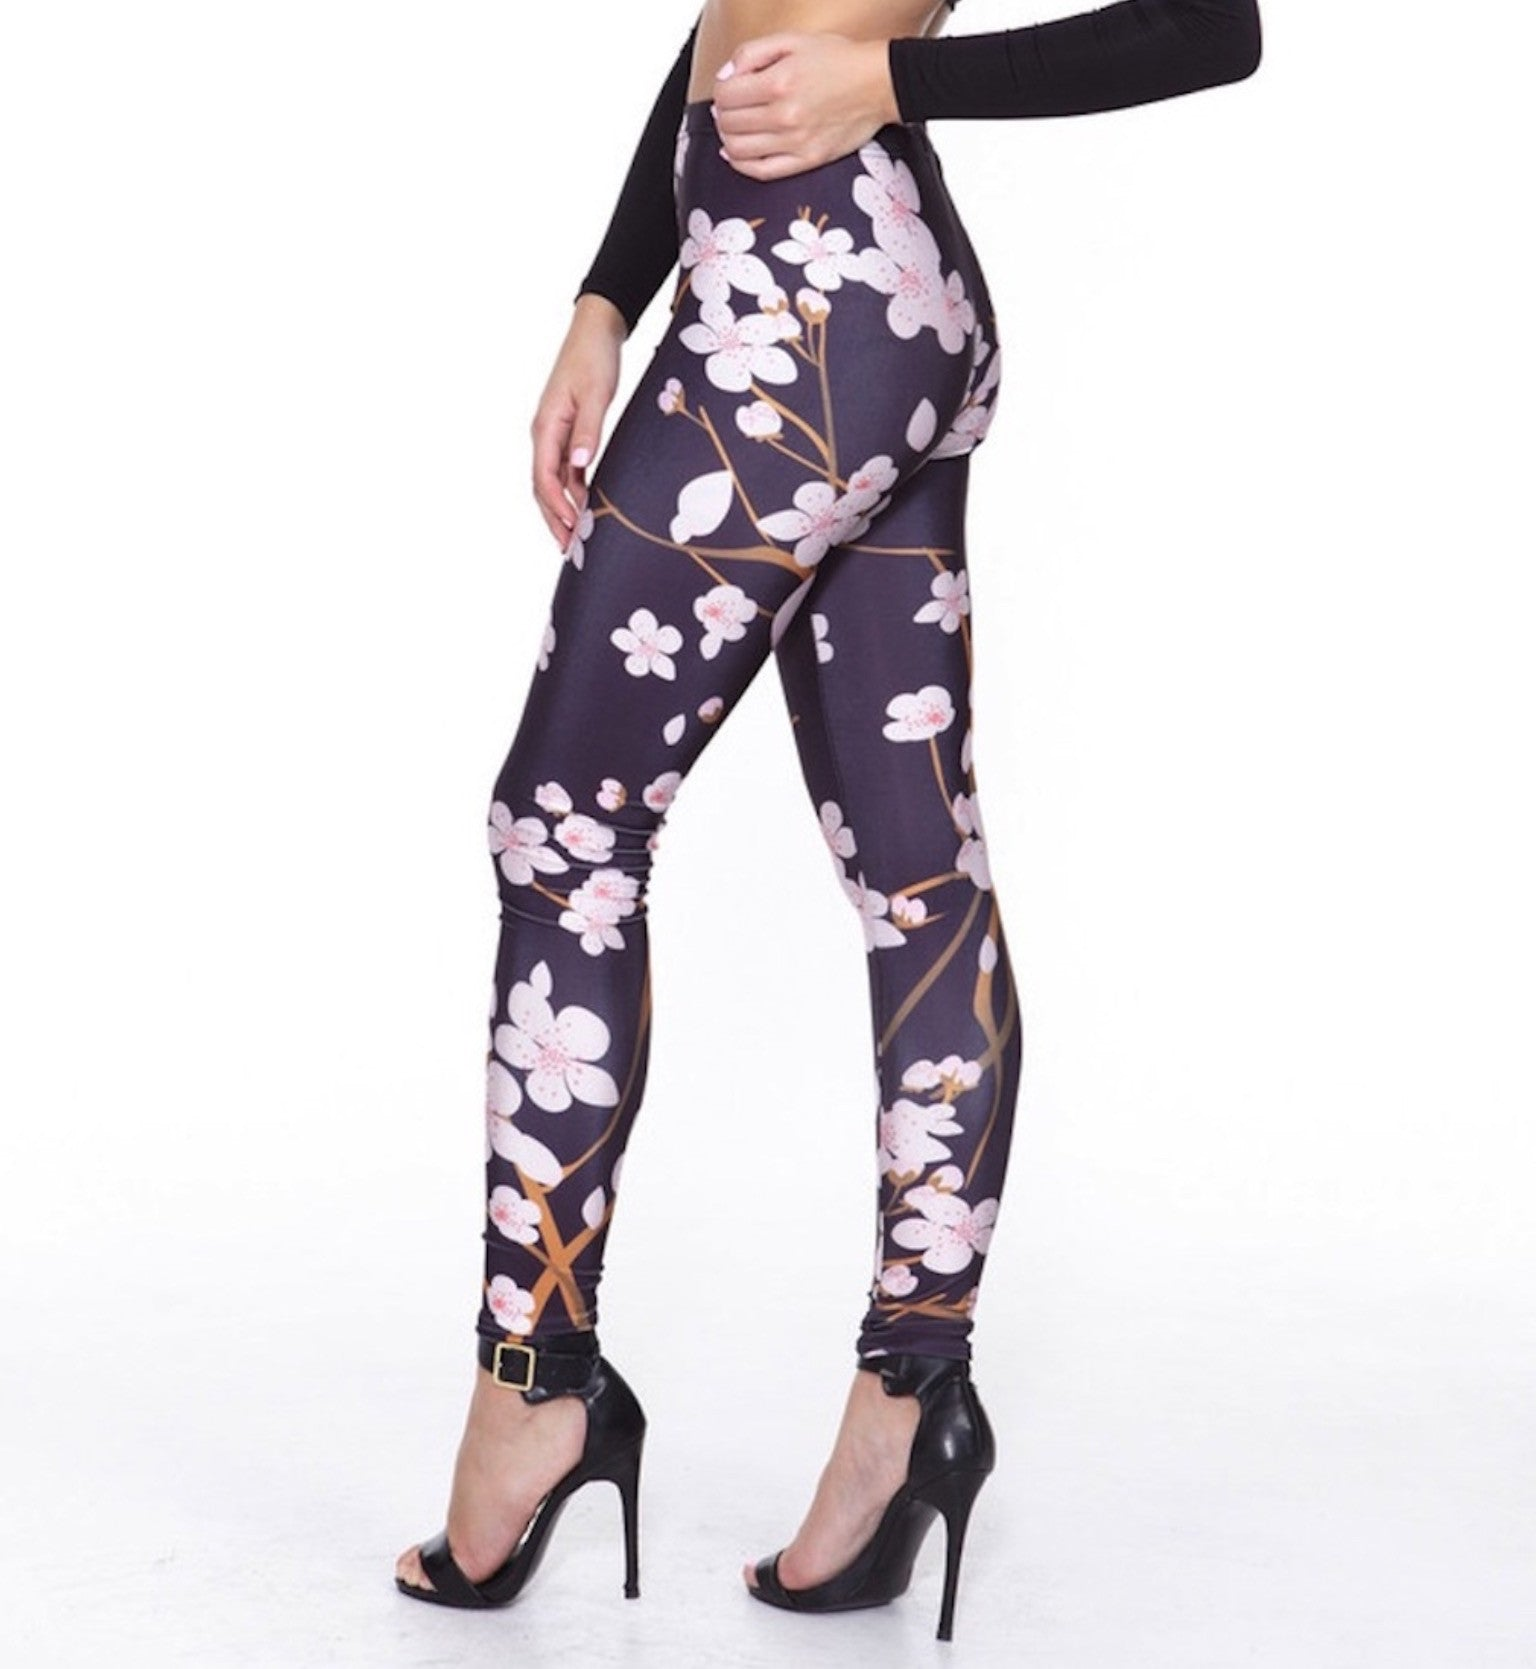 SOFT PETALS - NYLeggings.com